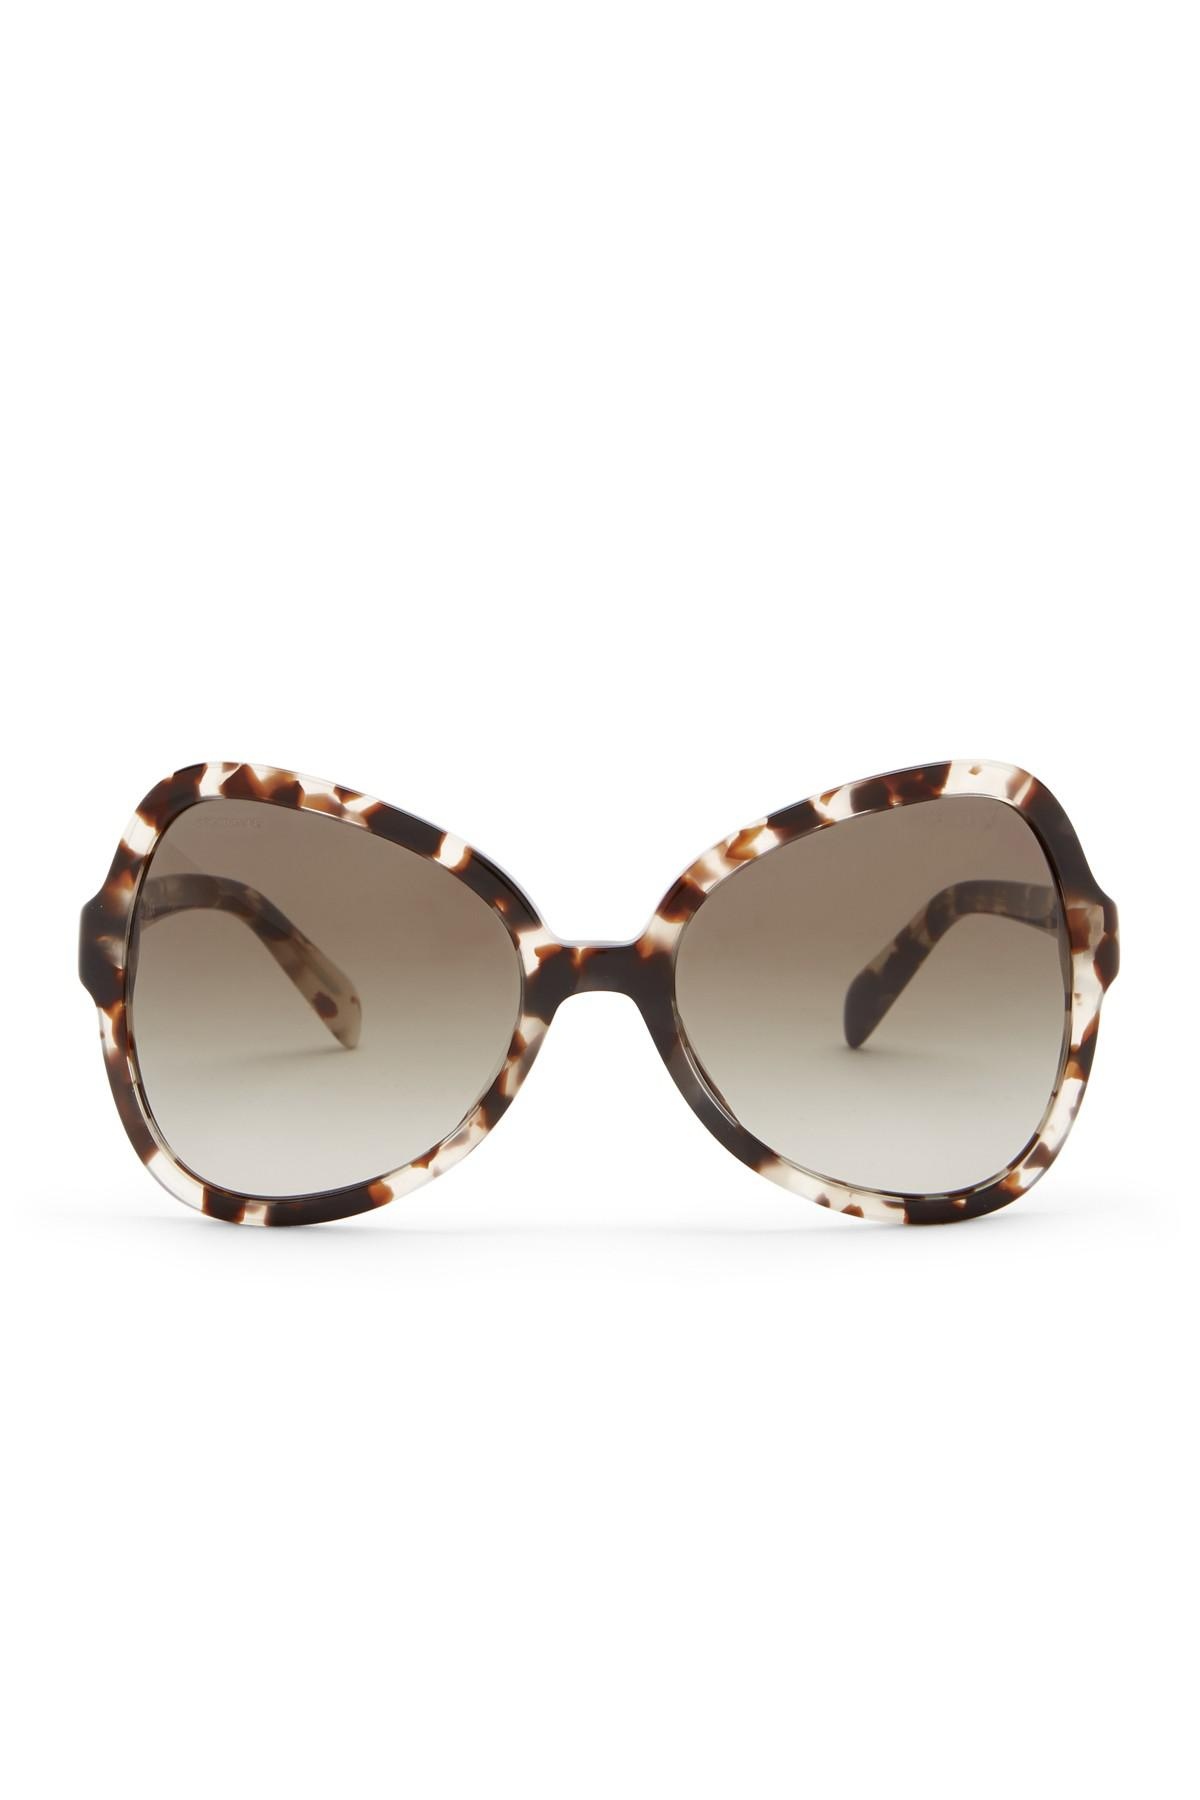 dbf9df0a0978 ... low price lyst prada 56mm butterfly sunglasses in brown b0f72 f91f6